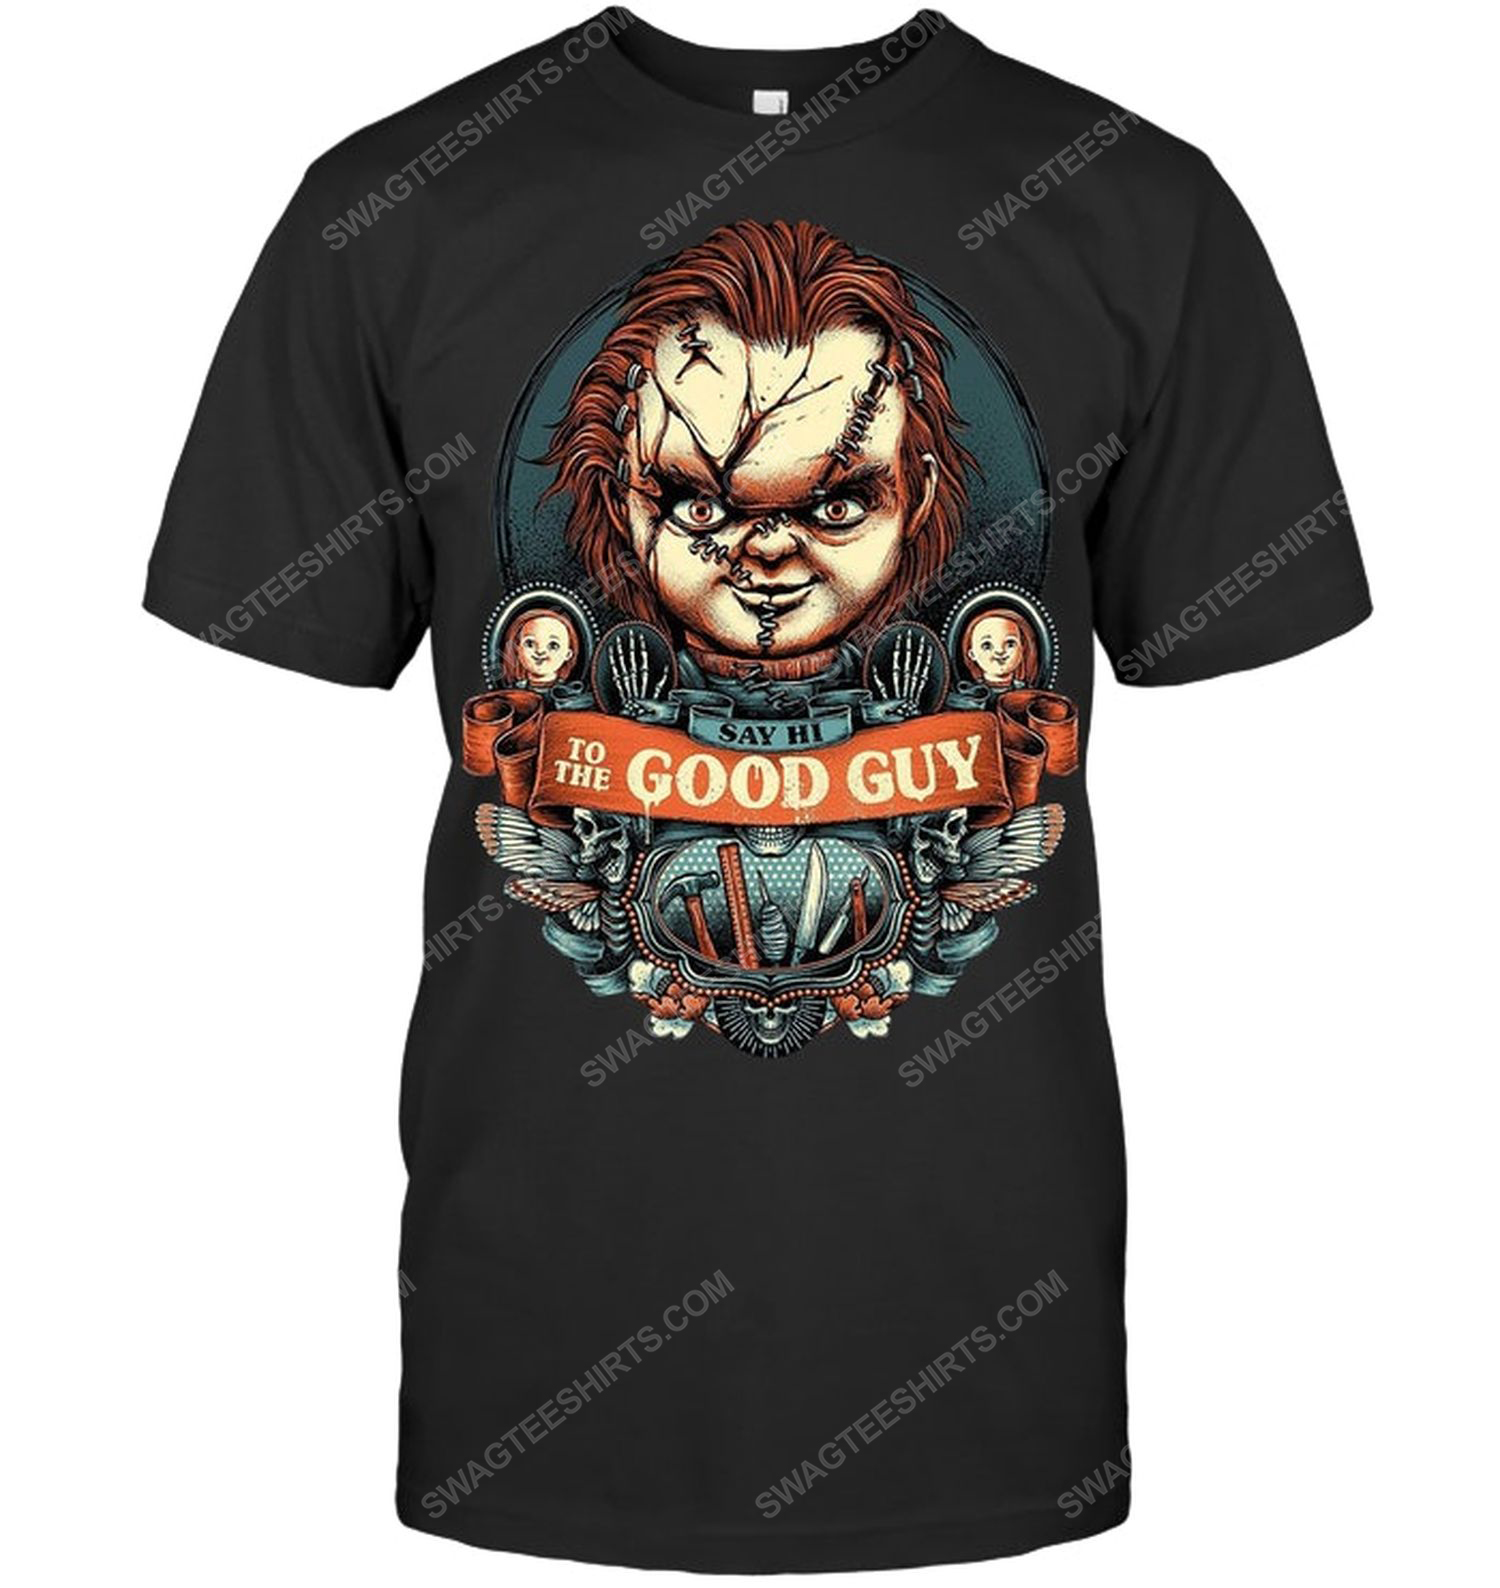 Child's play say hi to the good guy for halloween shirt 1